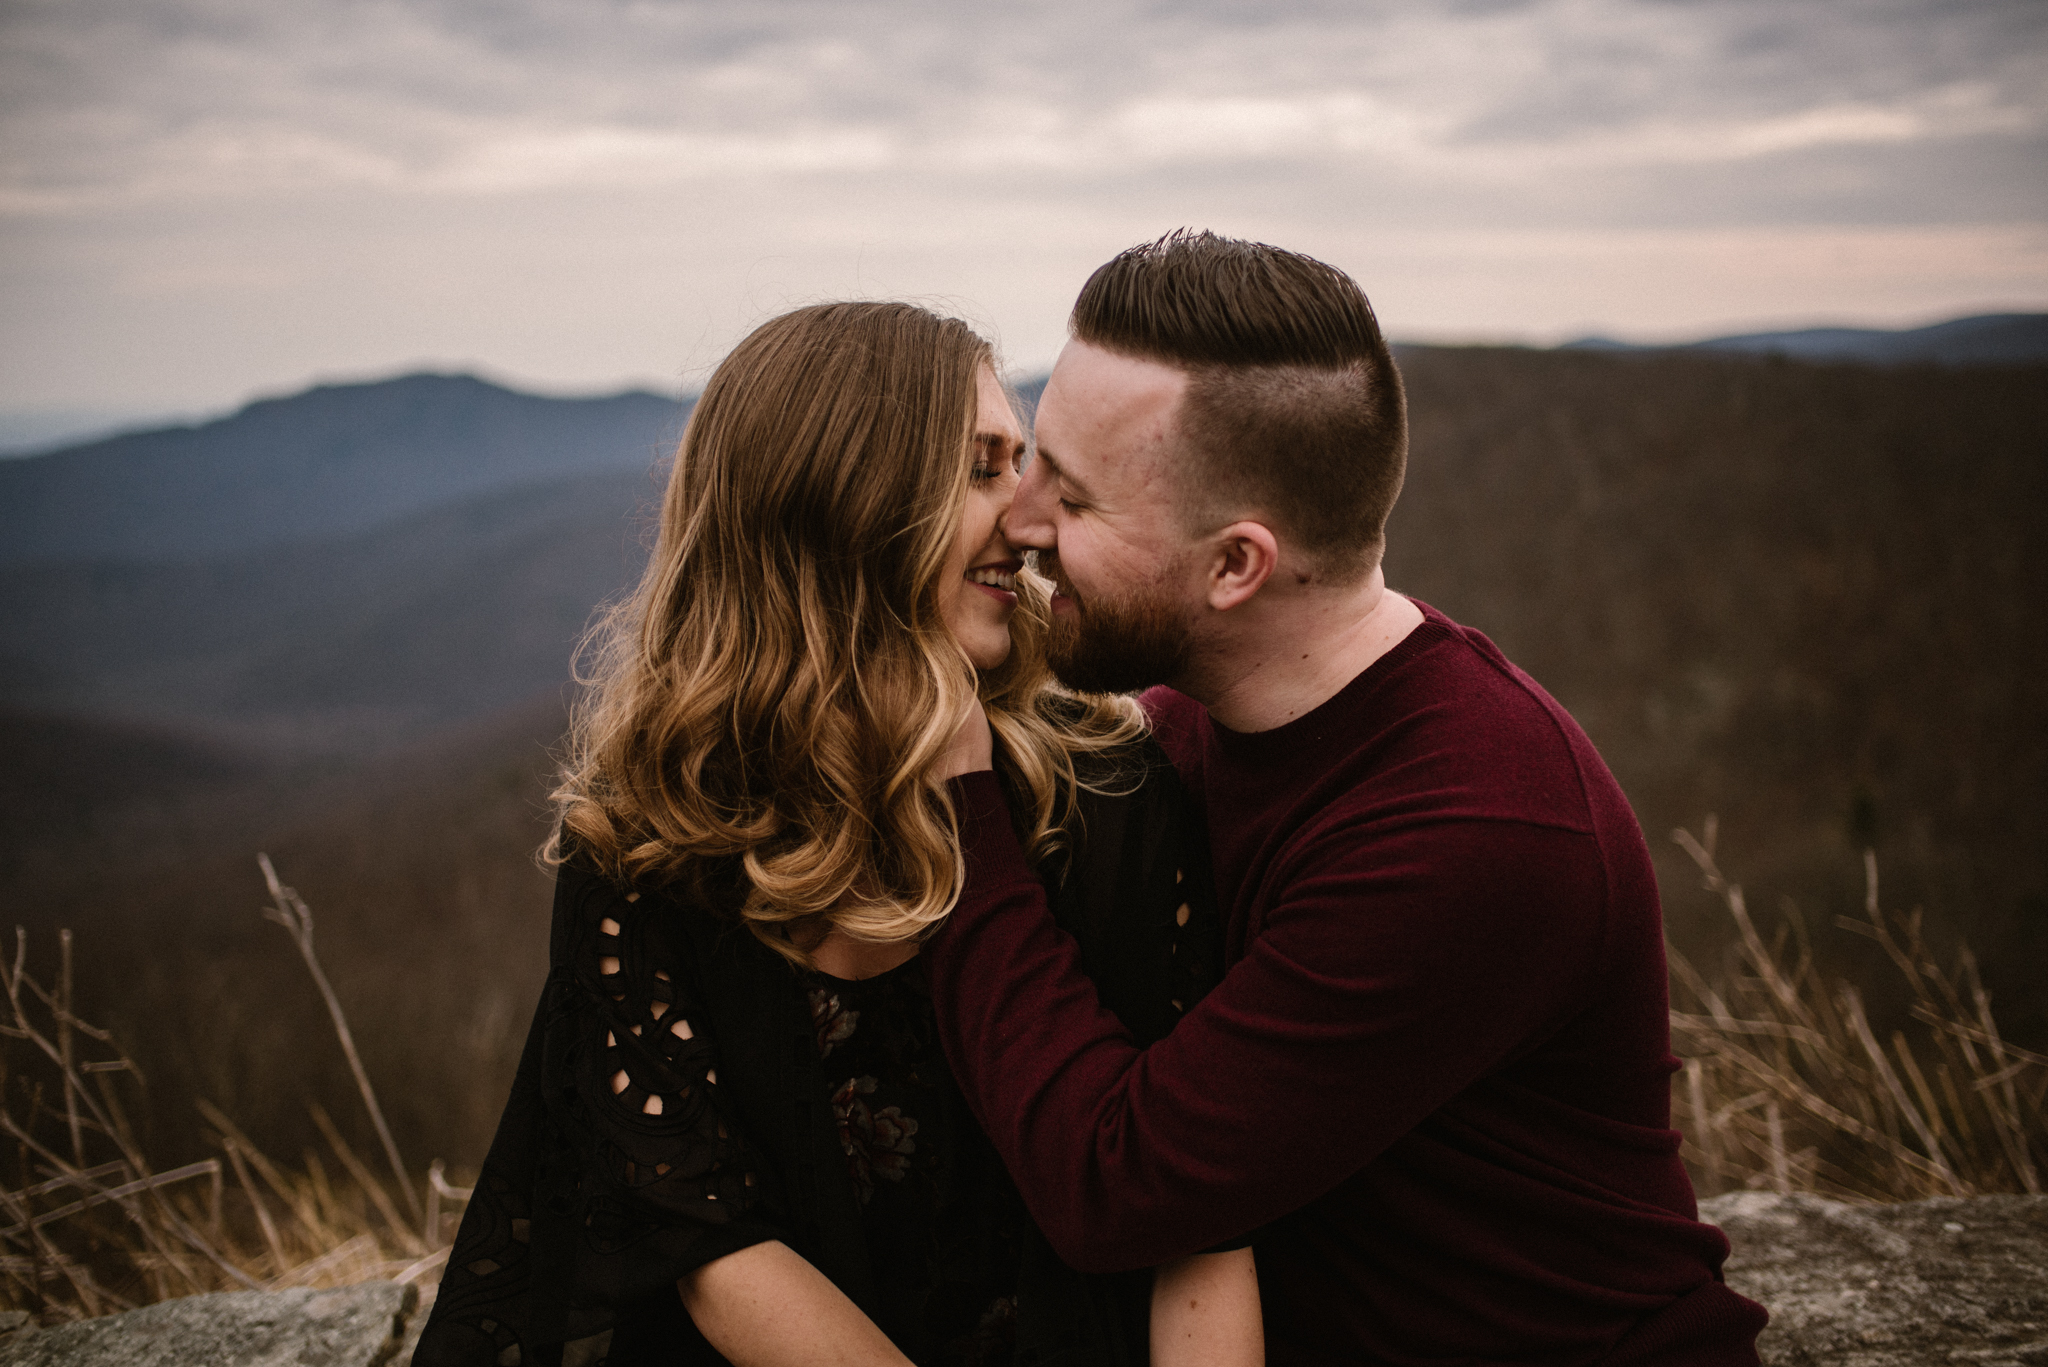 Nicole and Victor - Shenandoah National Park Engagement Photography - Blue Ridge Mountains Adventure Photography - White Sails Creative Photography_15.jpg